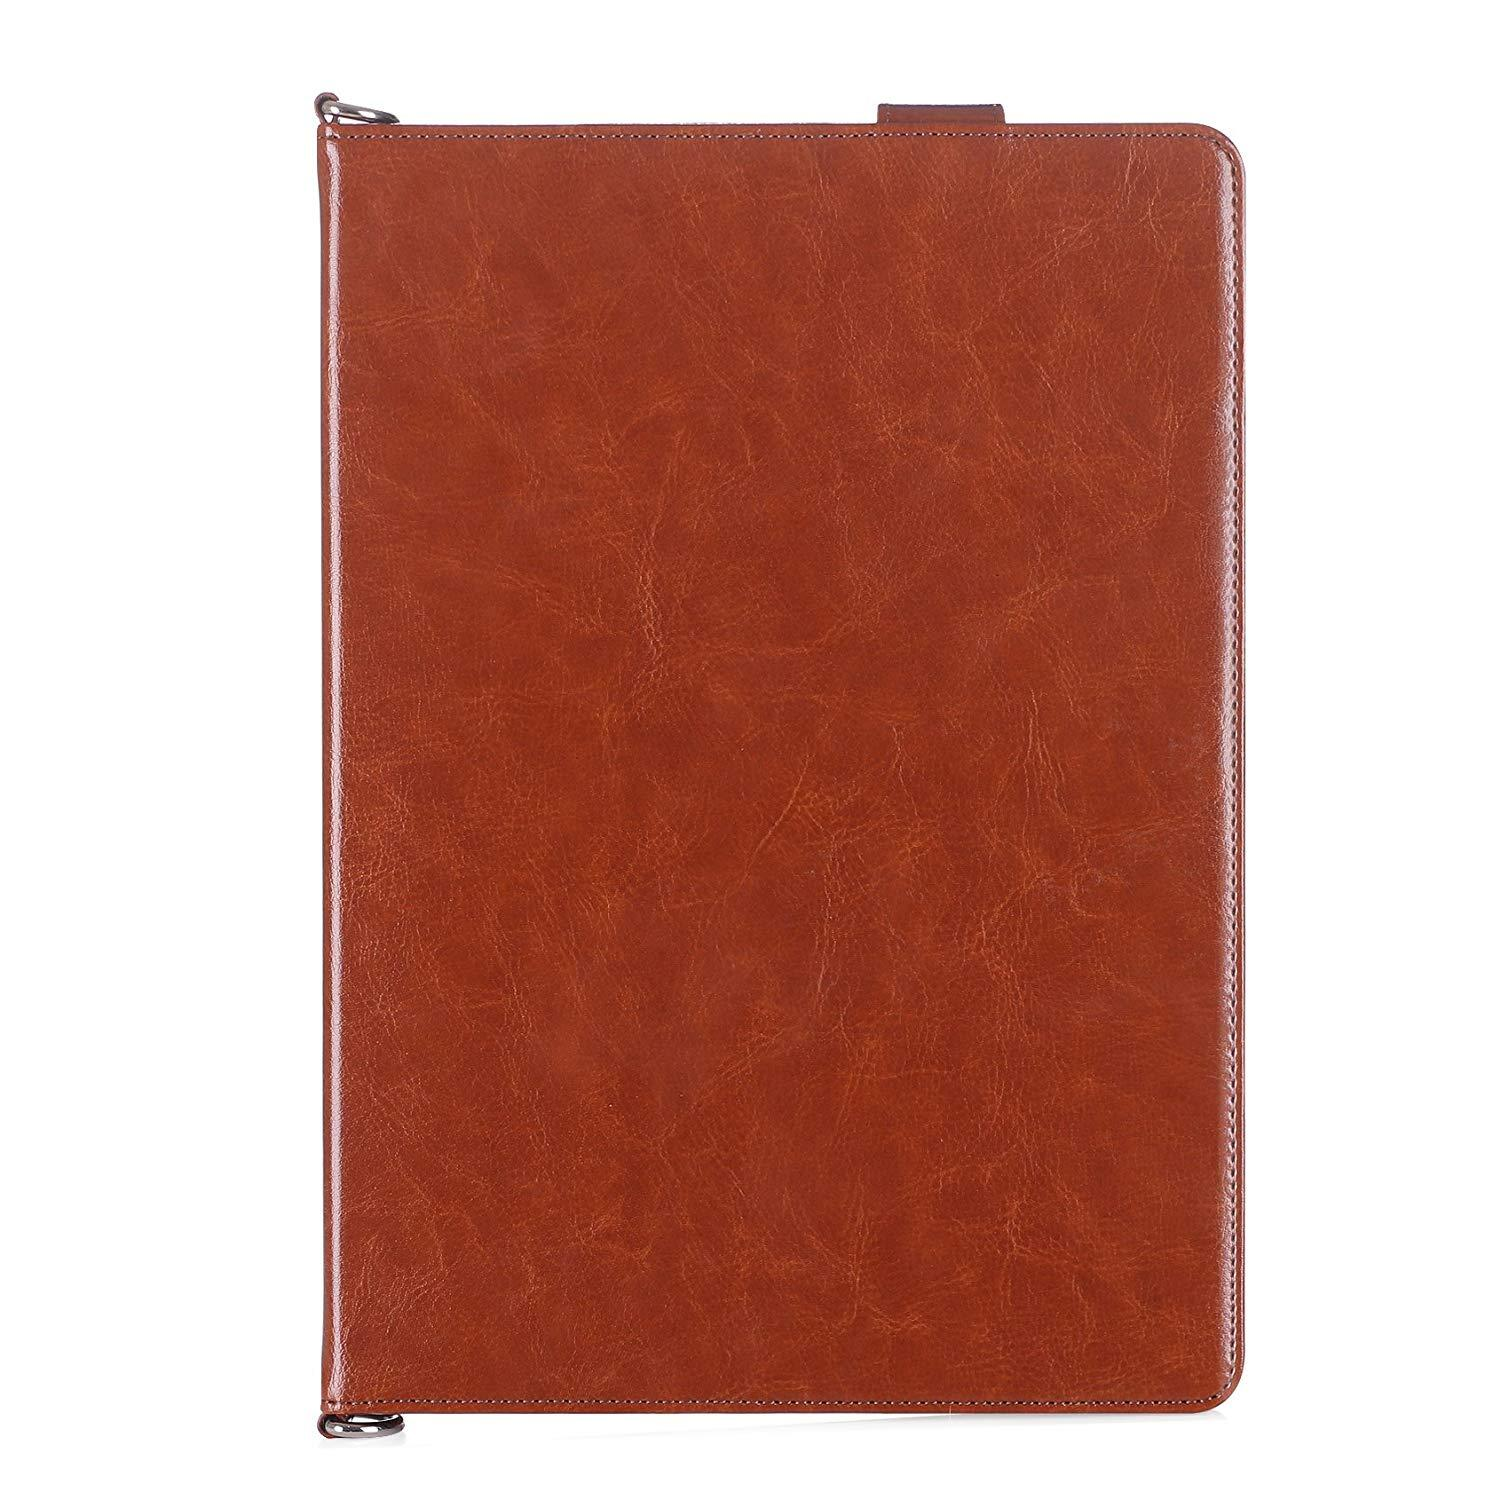 Luxurious Genuine Leather Case for 2019 iPad Air 10.5/2017 iPad Pro 10.5